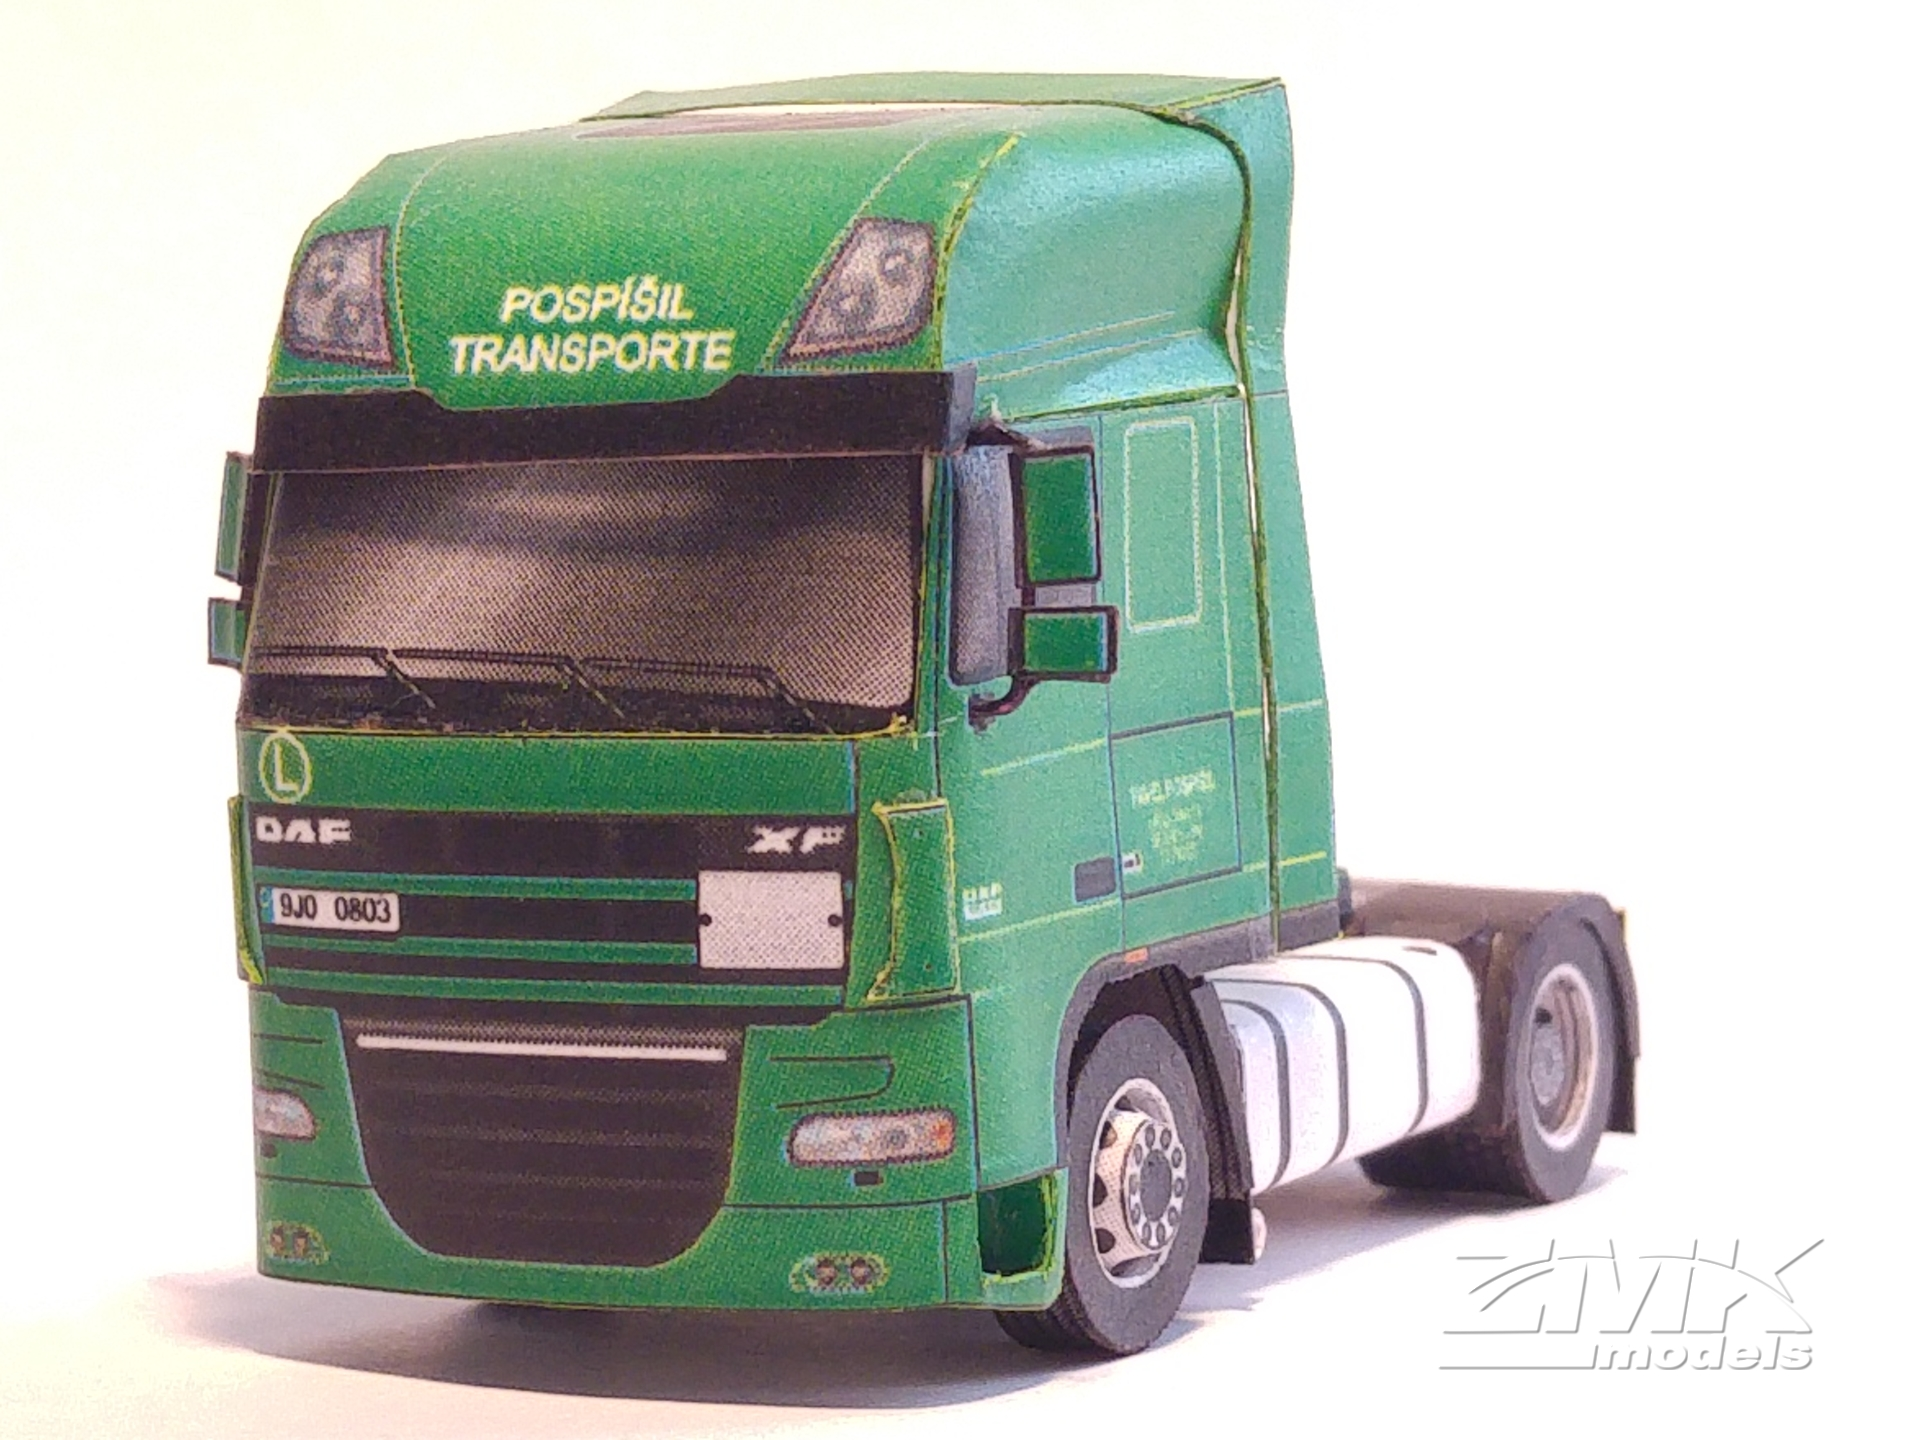 Papercraft imprimible y armable del Trailer DAF XF 105 SSC. Manualidades a Raudales.